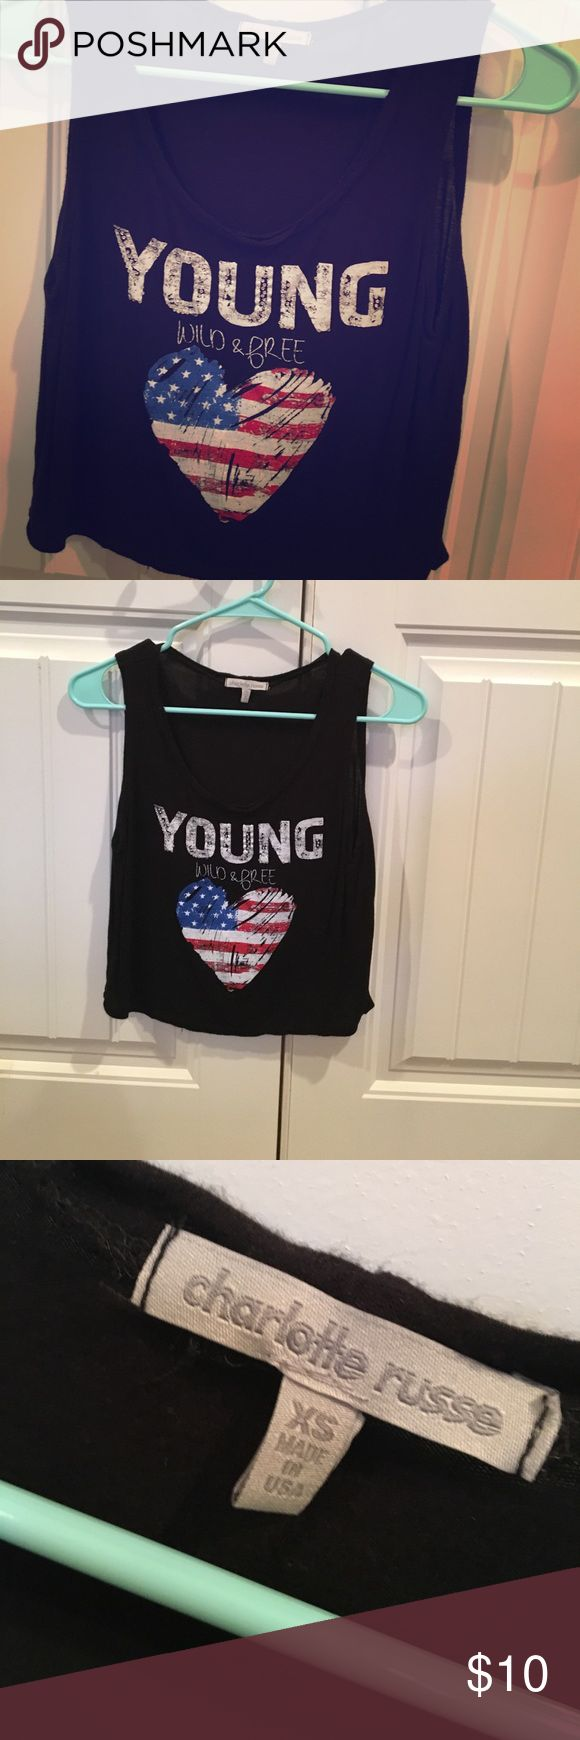 XSmall black crop tank. This tank was bought last summer from Charolette Rouse and only worn once to a specific event. It is cropped. Very comfortable, good condition. Charlotte Russe Tops Tank Tops